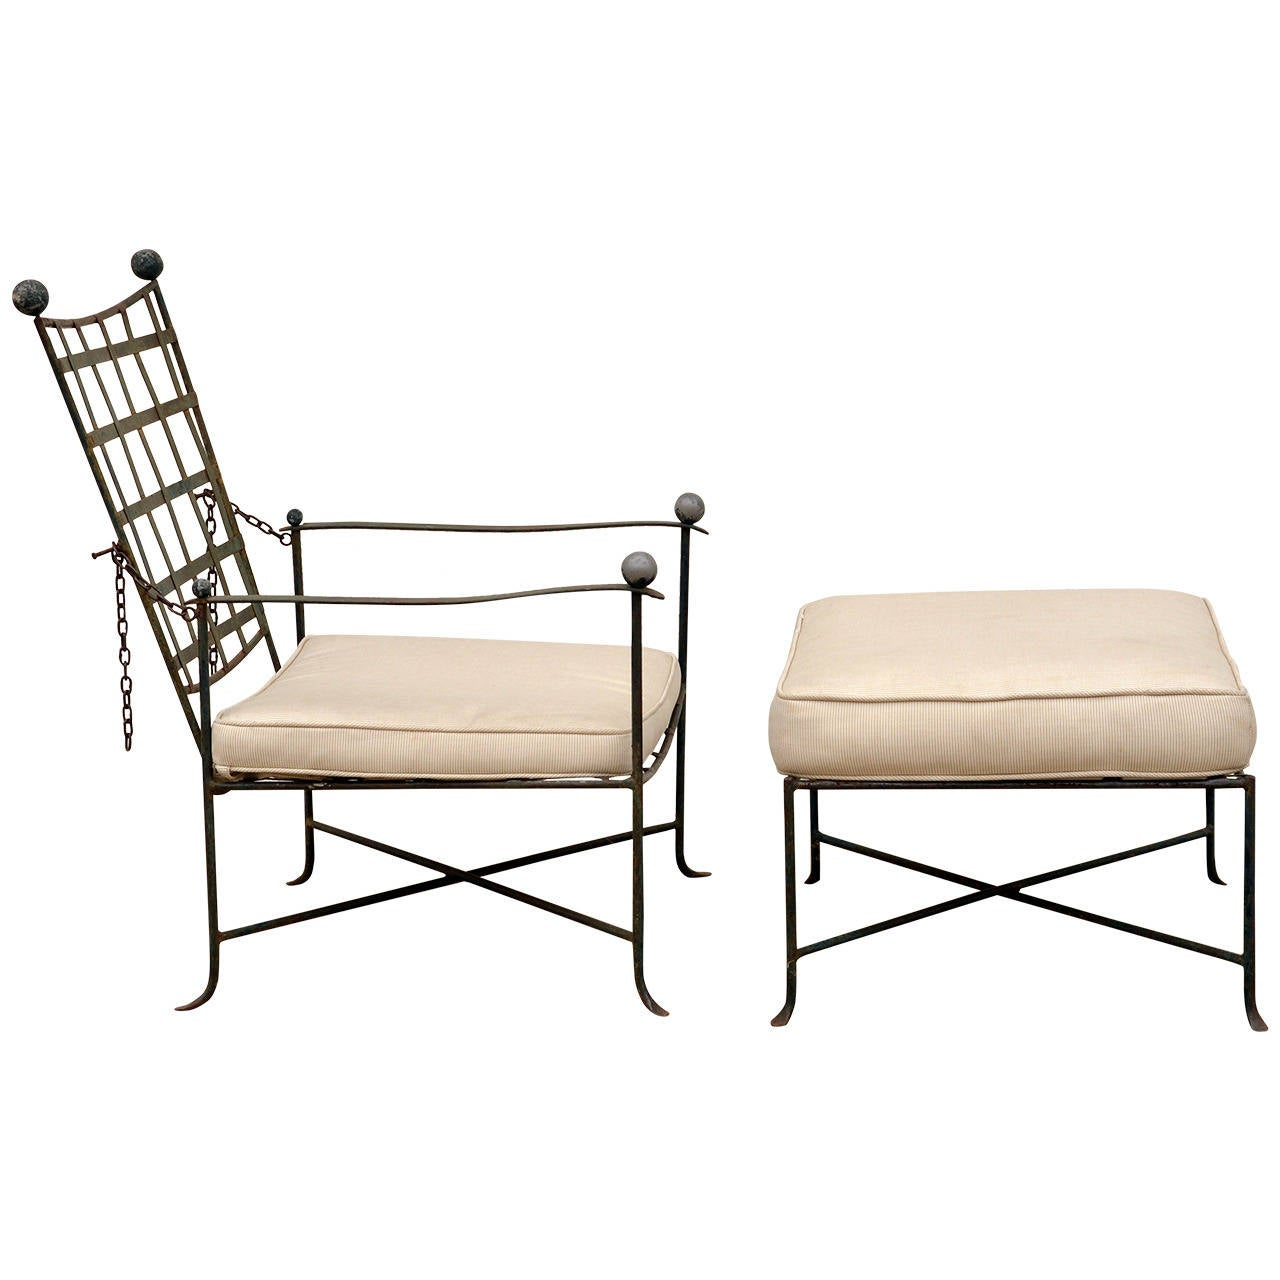 Elegant Patio Lounge Chair and Ottoman by Mario Papperzini for John Salterini